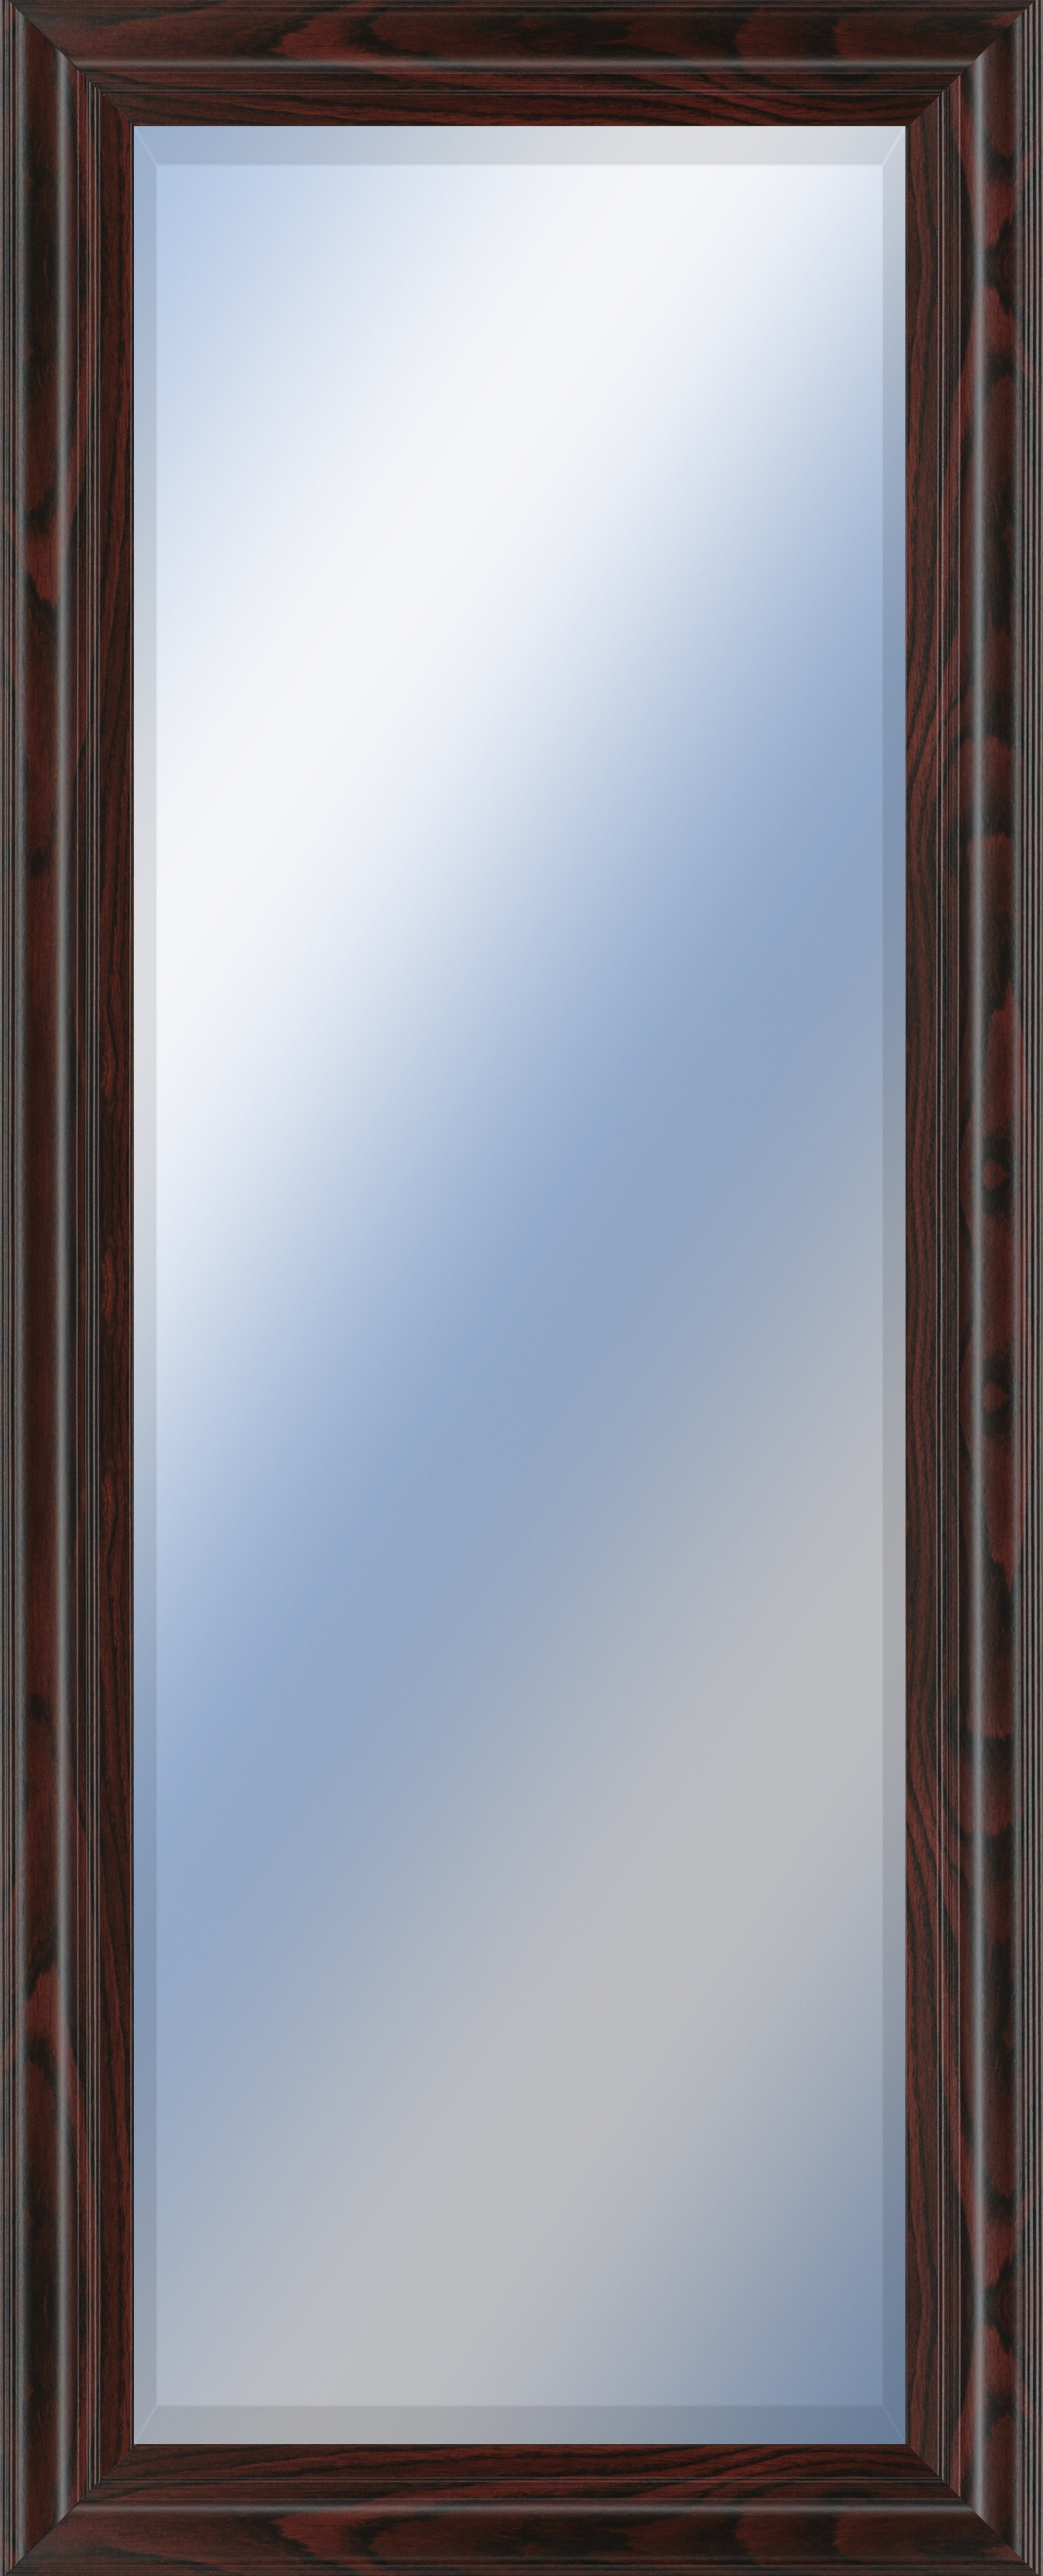 Dedrick Decorative Framed Modern And Contemporary Wall Mirror Intended For Dedrick Decorative Framed Modern And Contemporary Wall Mirrors (Image 8 of 20)